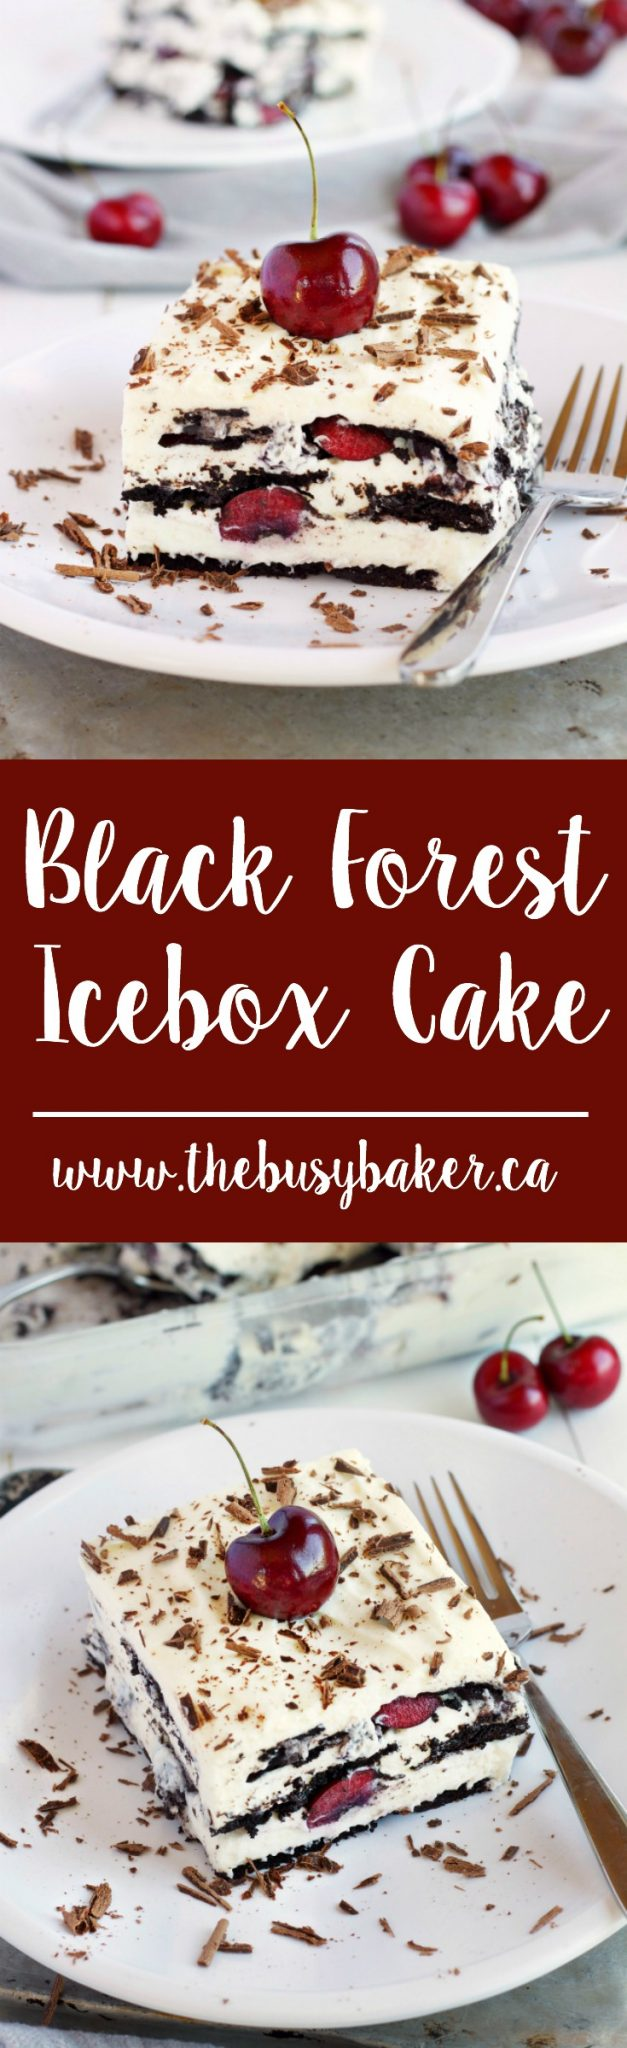 This No Bake Black Forest Icebox Cake is super creamy and sweet featuring fresh cherries, and you'll only need 4 simple ingredients to make it! Recipe from thebusybaker.ca! via @busybakerblog